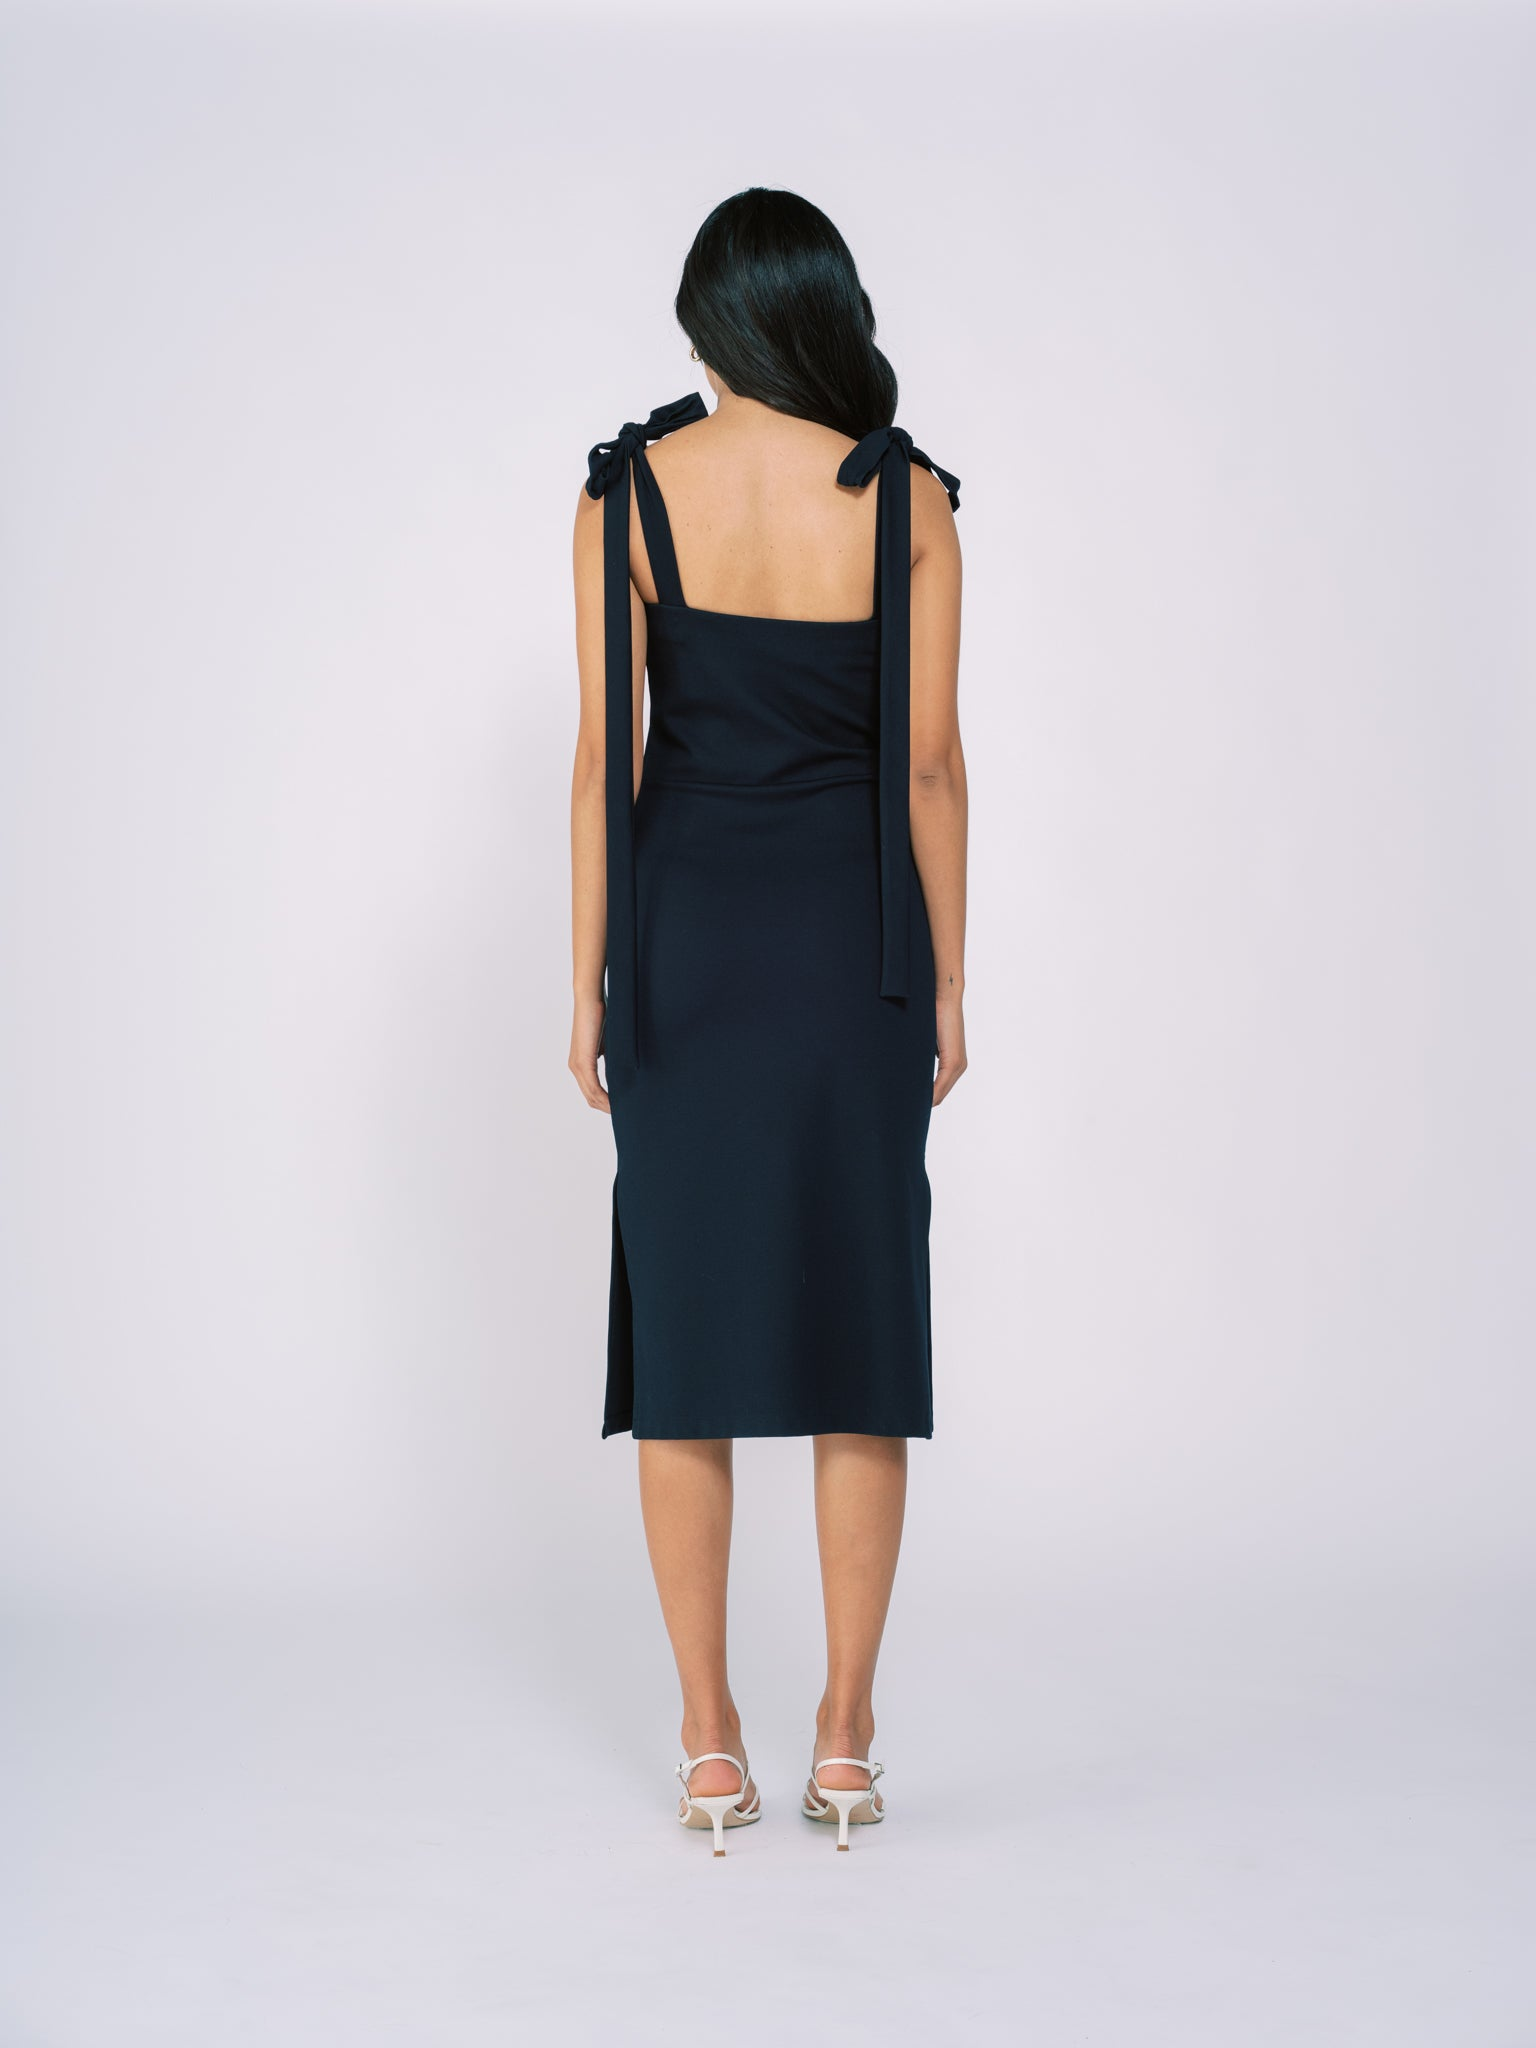 Tied Shoulder Dress in Navy